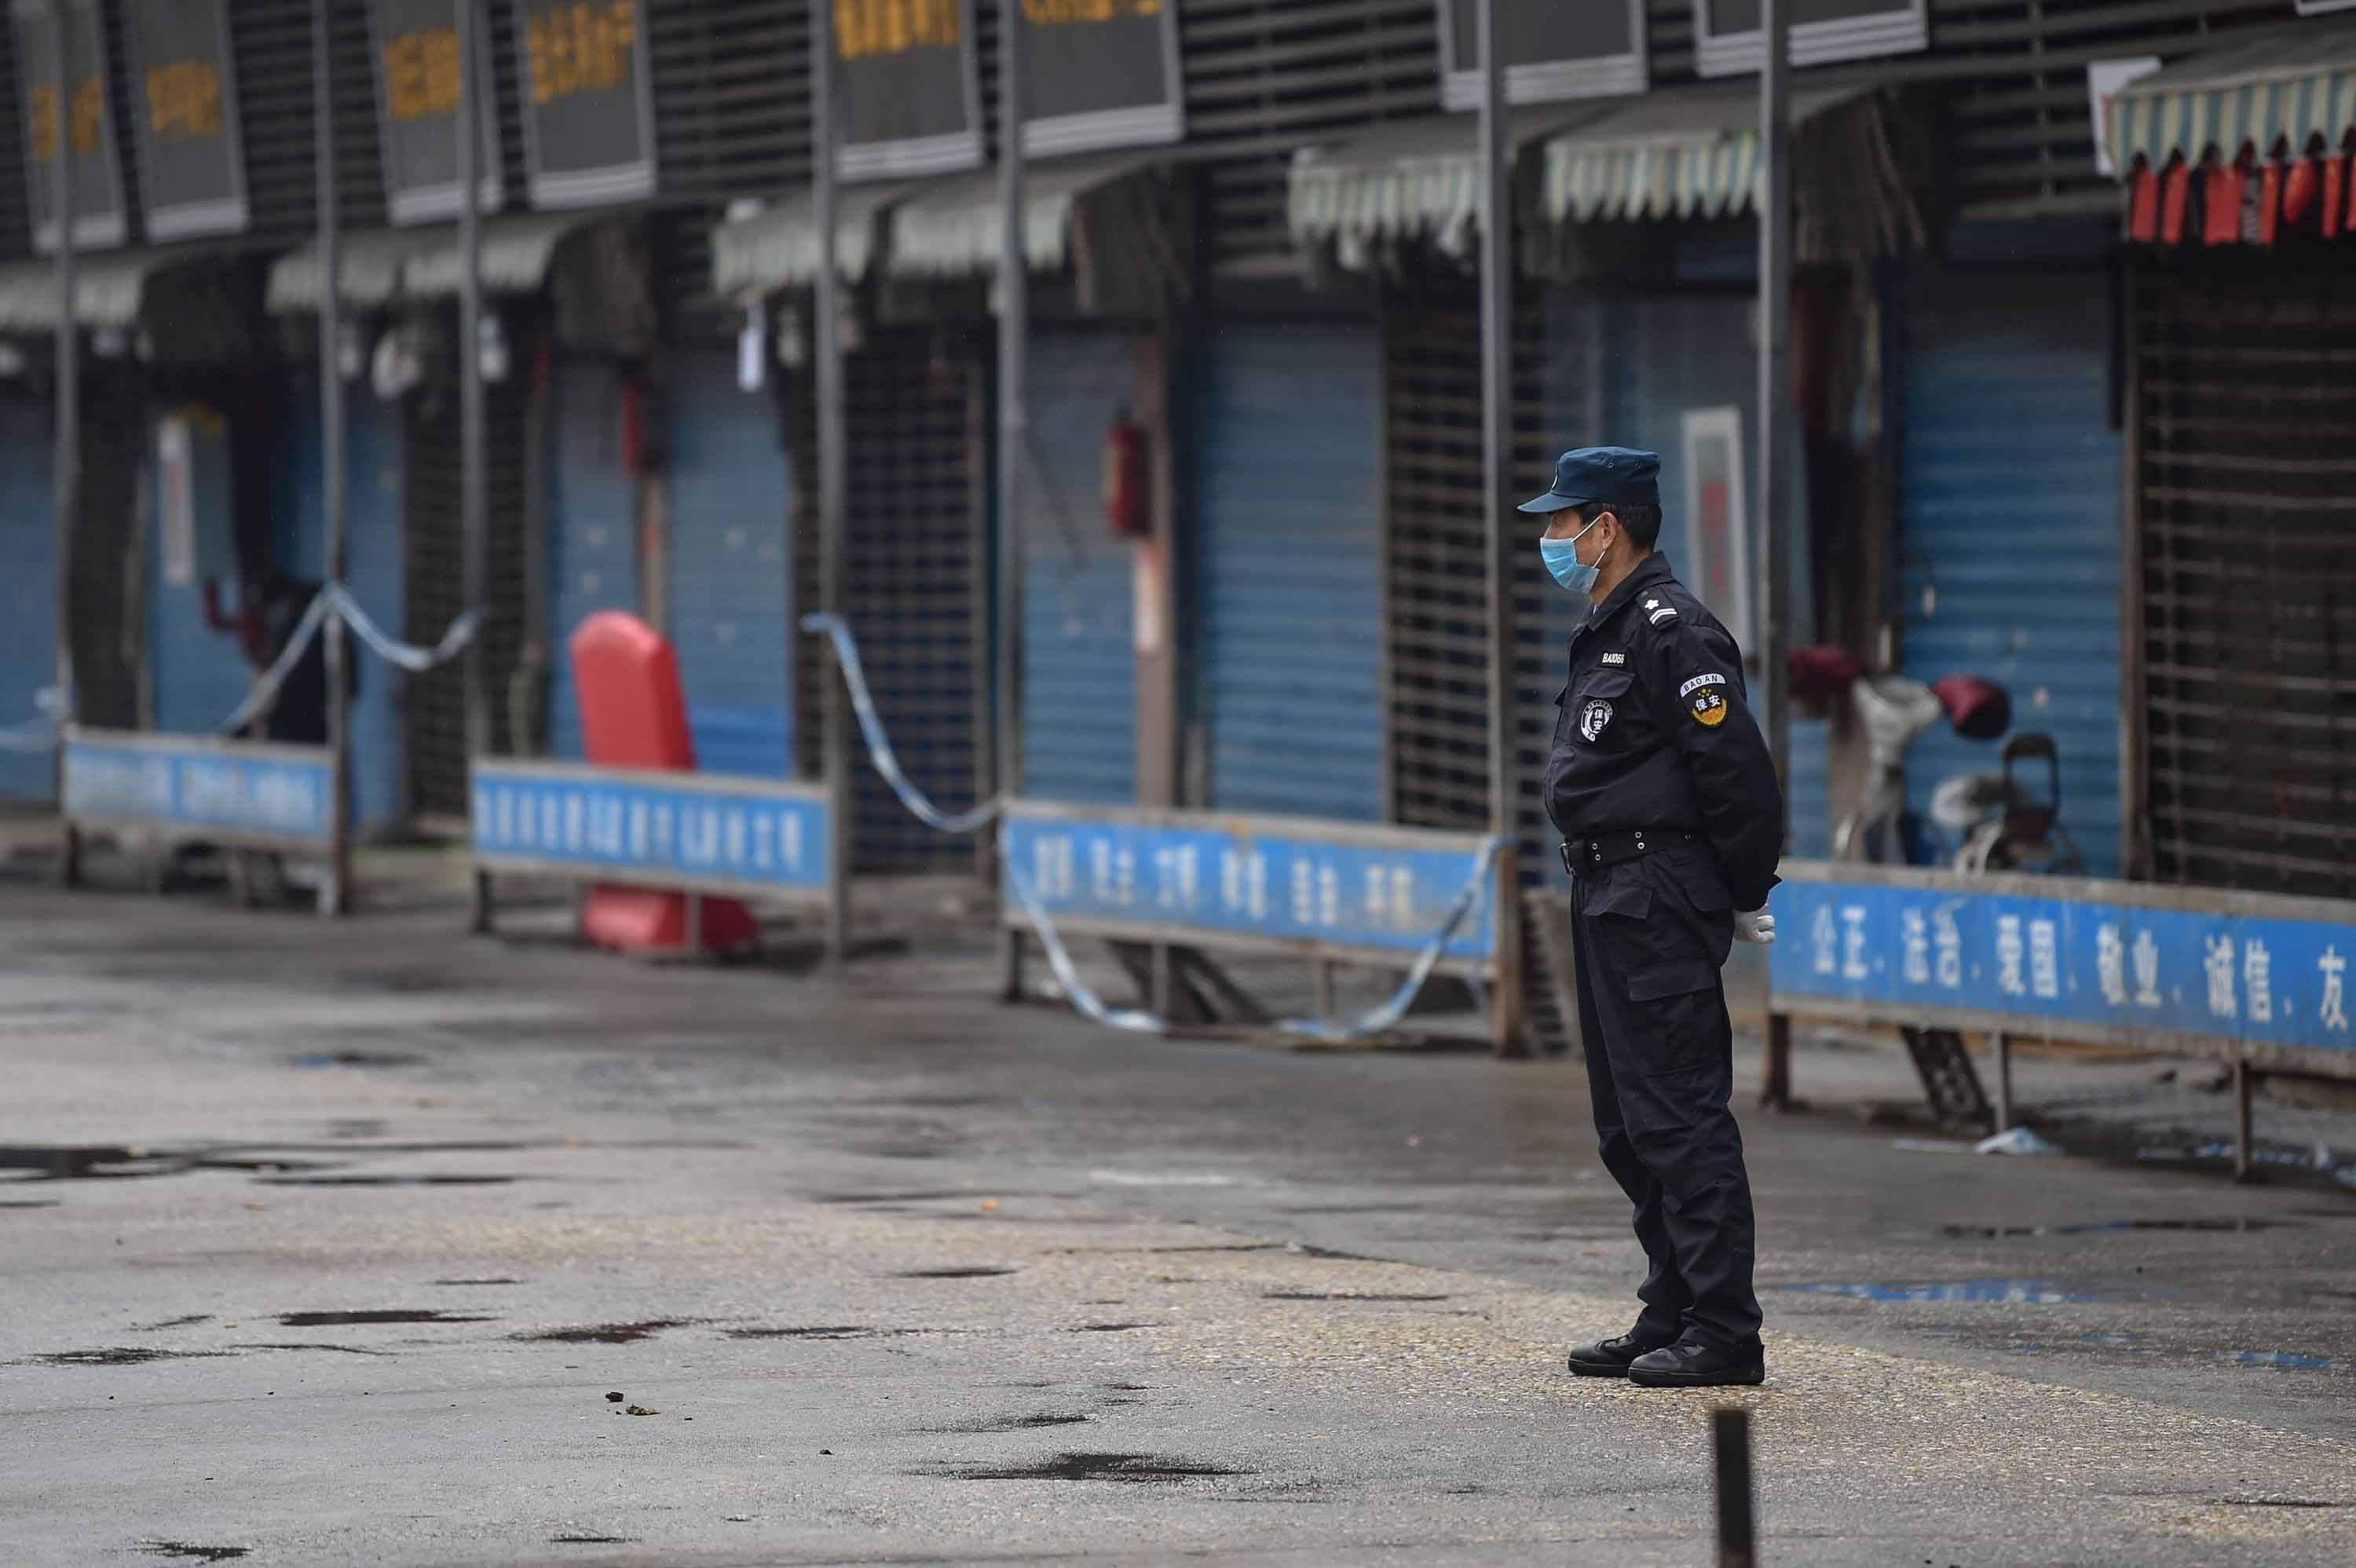 A security guard stands outside the Huanan Seafood Wholesale Market in Wuhan on January 24. Chinese health authorities closed the market after it was discovered that wild animals sold there may be the source of the virus.